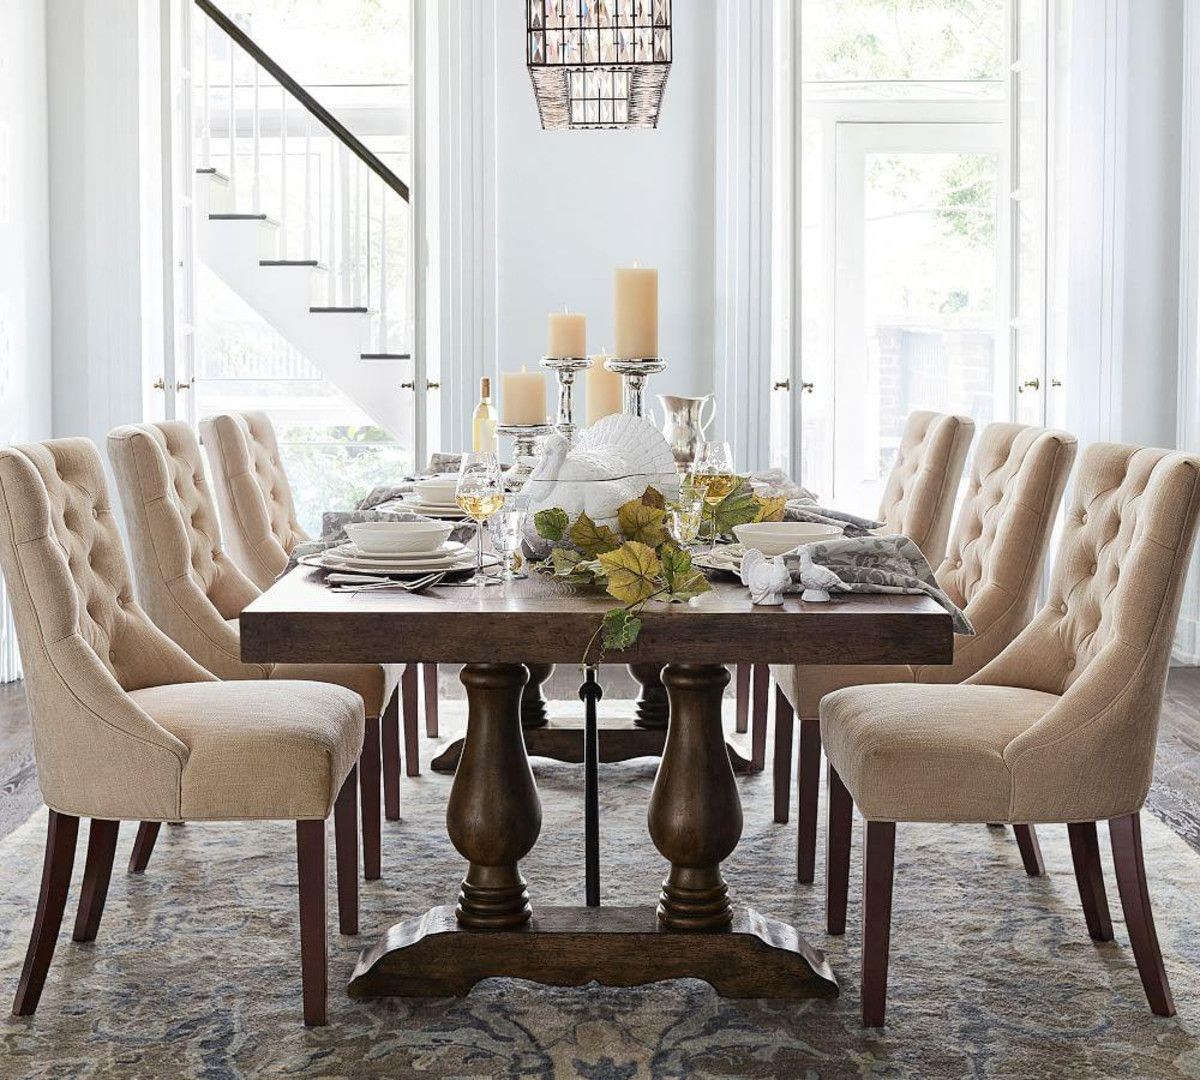 Lorraine Extending Dining Table In 2019 | Woodworks With Regard To Newest Hewn Oak Lorraine Pedestal Extending Dining Tables (View 4 of 25)